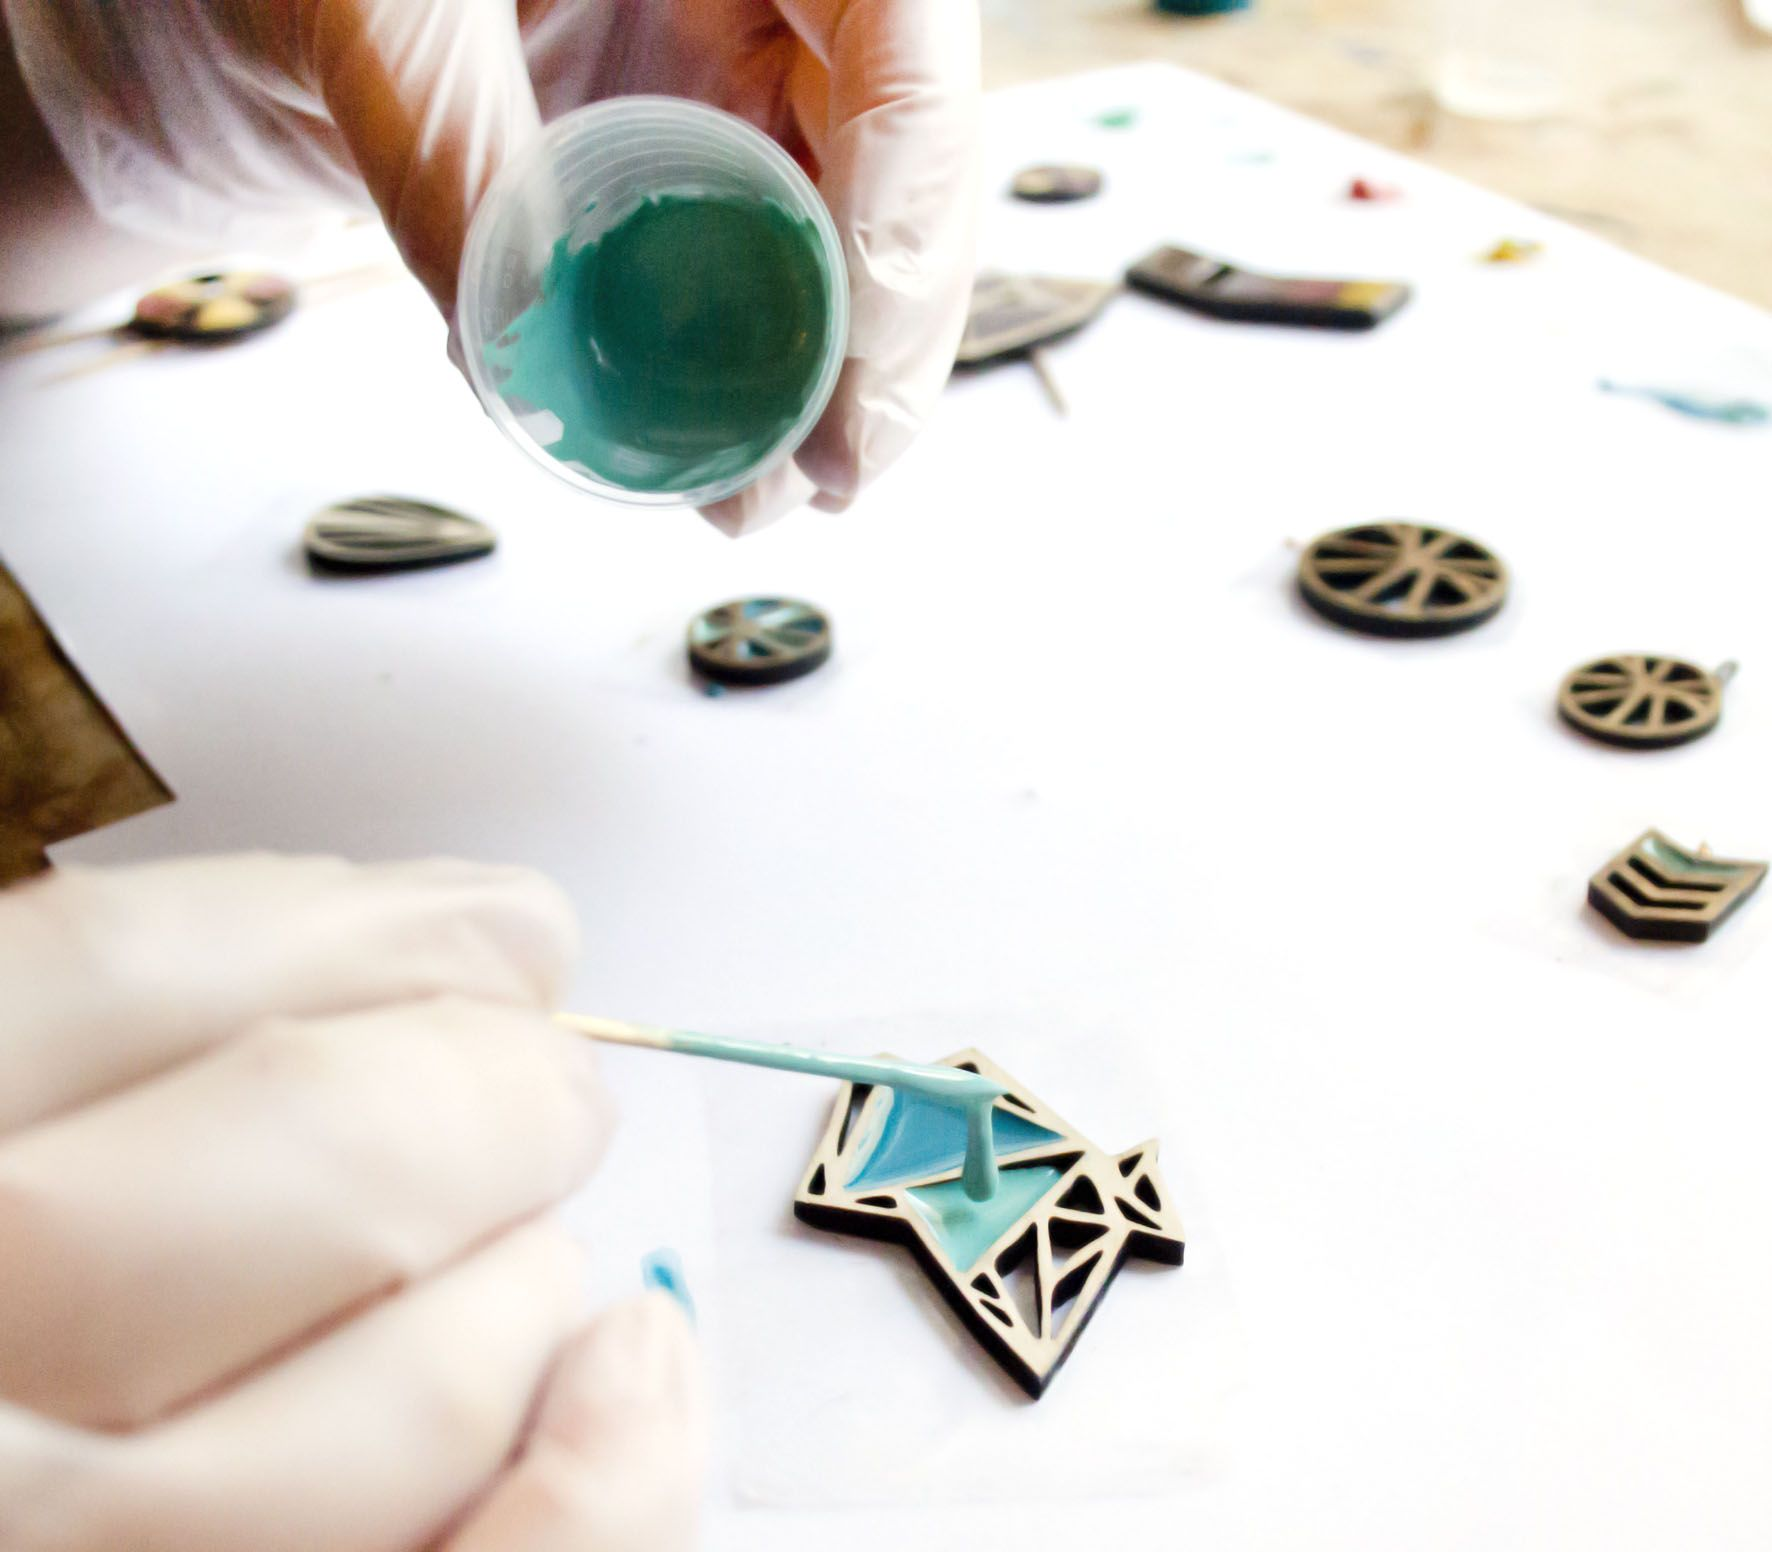 Pmy apologies i have been really busy with an exciting new media dear george making jewellery with resin wood skill and love solutioingenieria Choice Image